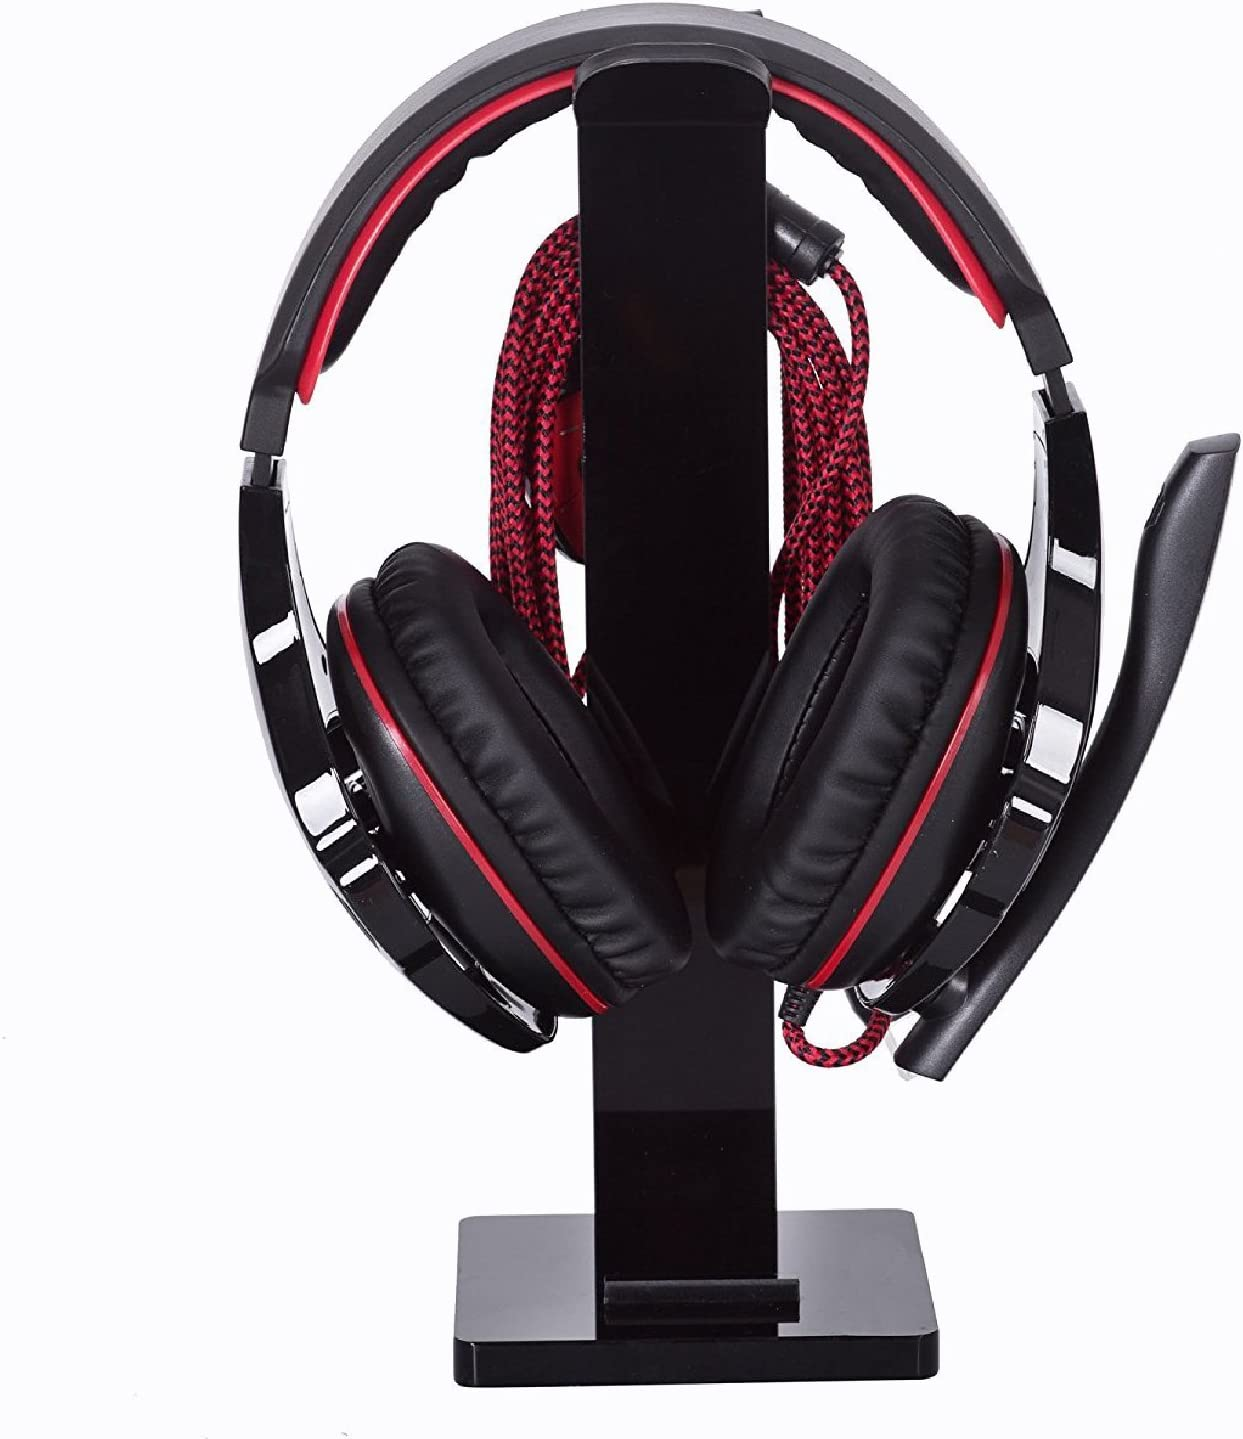 Black Geekdigg Gaming Headset Headphone Stand Holder with Cable Organizer /& Cellphone Stand